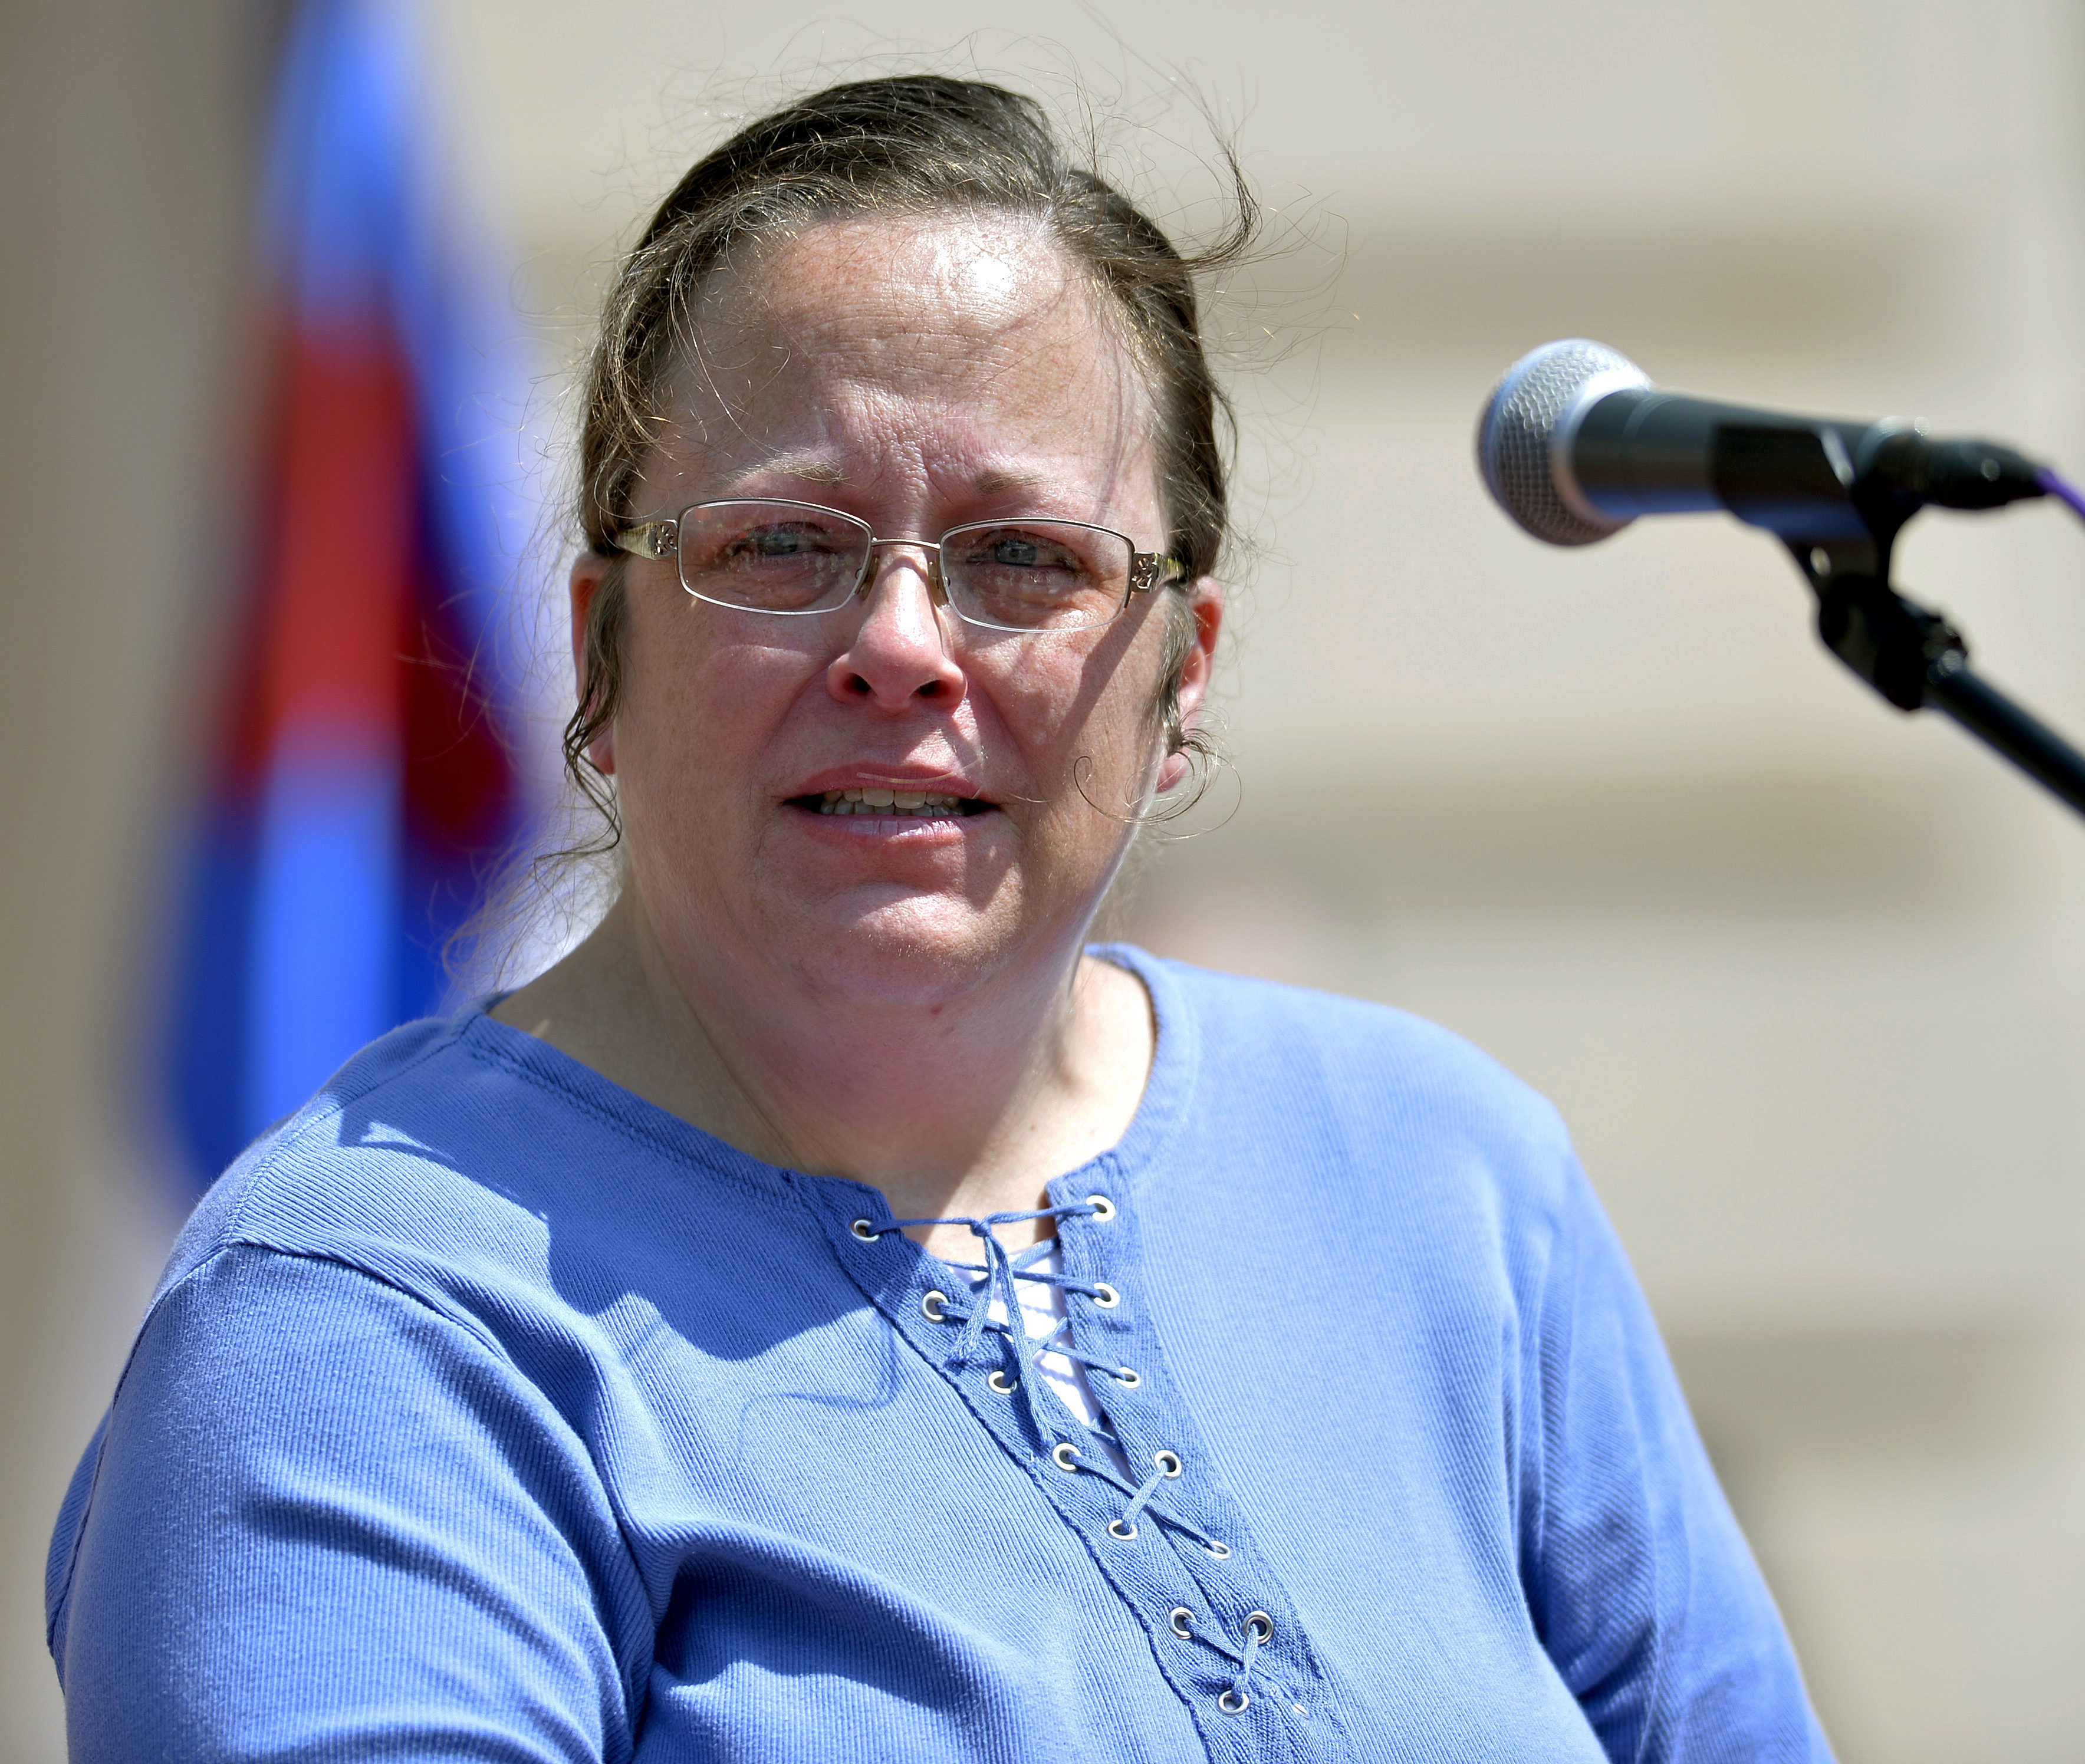 Rowan County Kentucky Clerk Kim Davis speaks to a gathering of supporters during a rally on the steps of the Kentucky State Capitol in Frankfort, Ky. on Aug. 22, 2015.